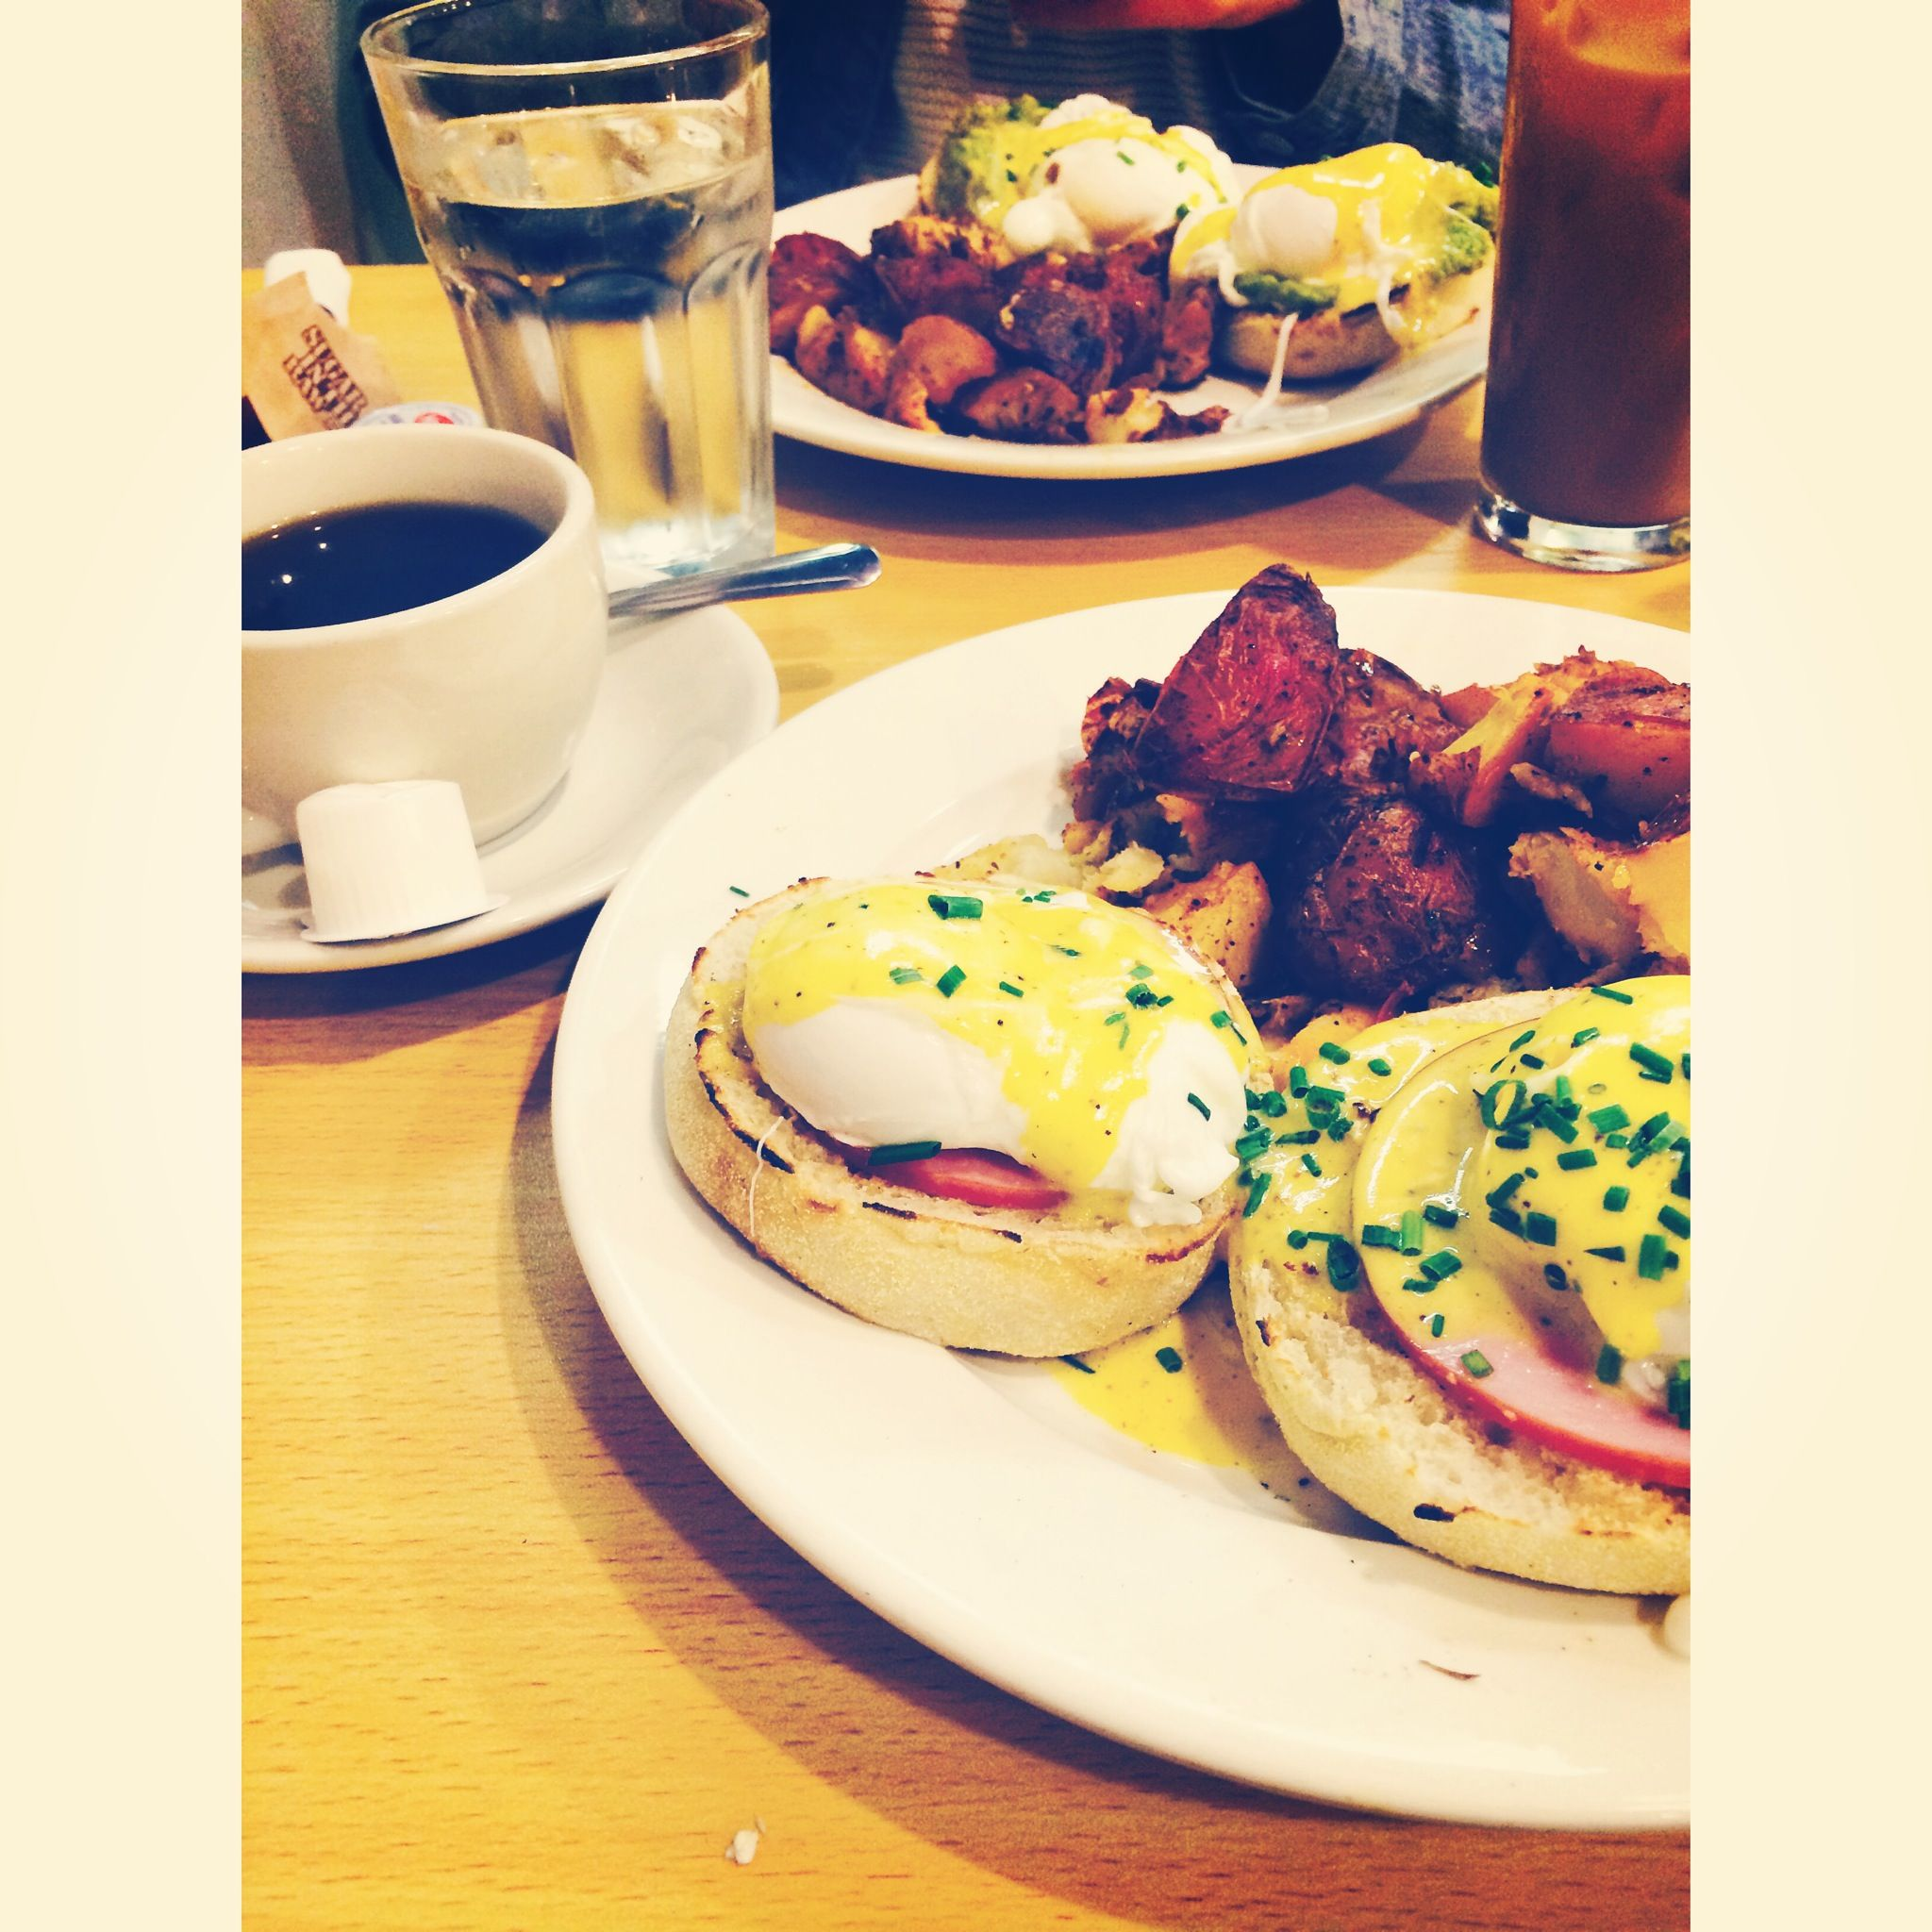 Exploring boston one cafe at a time